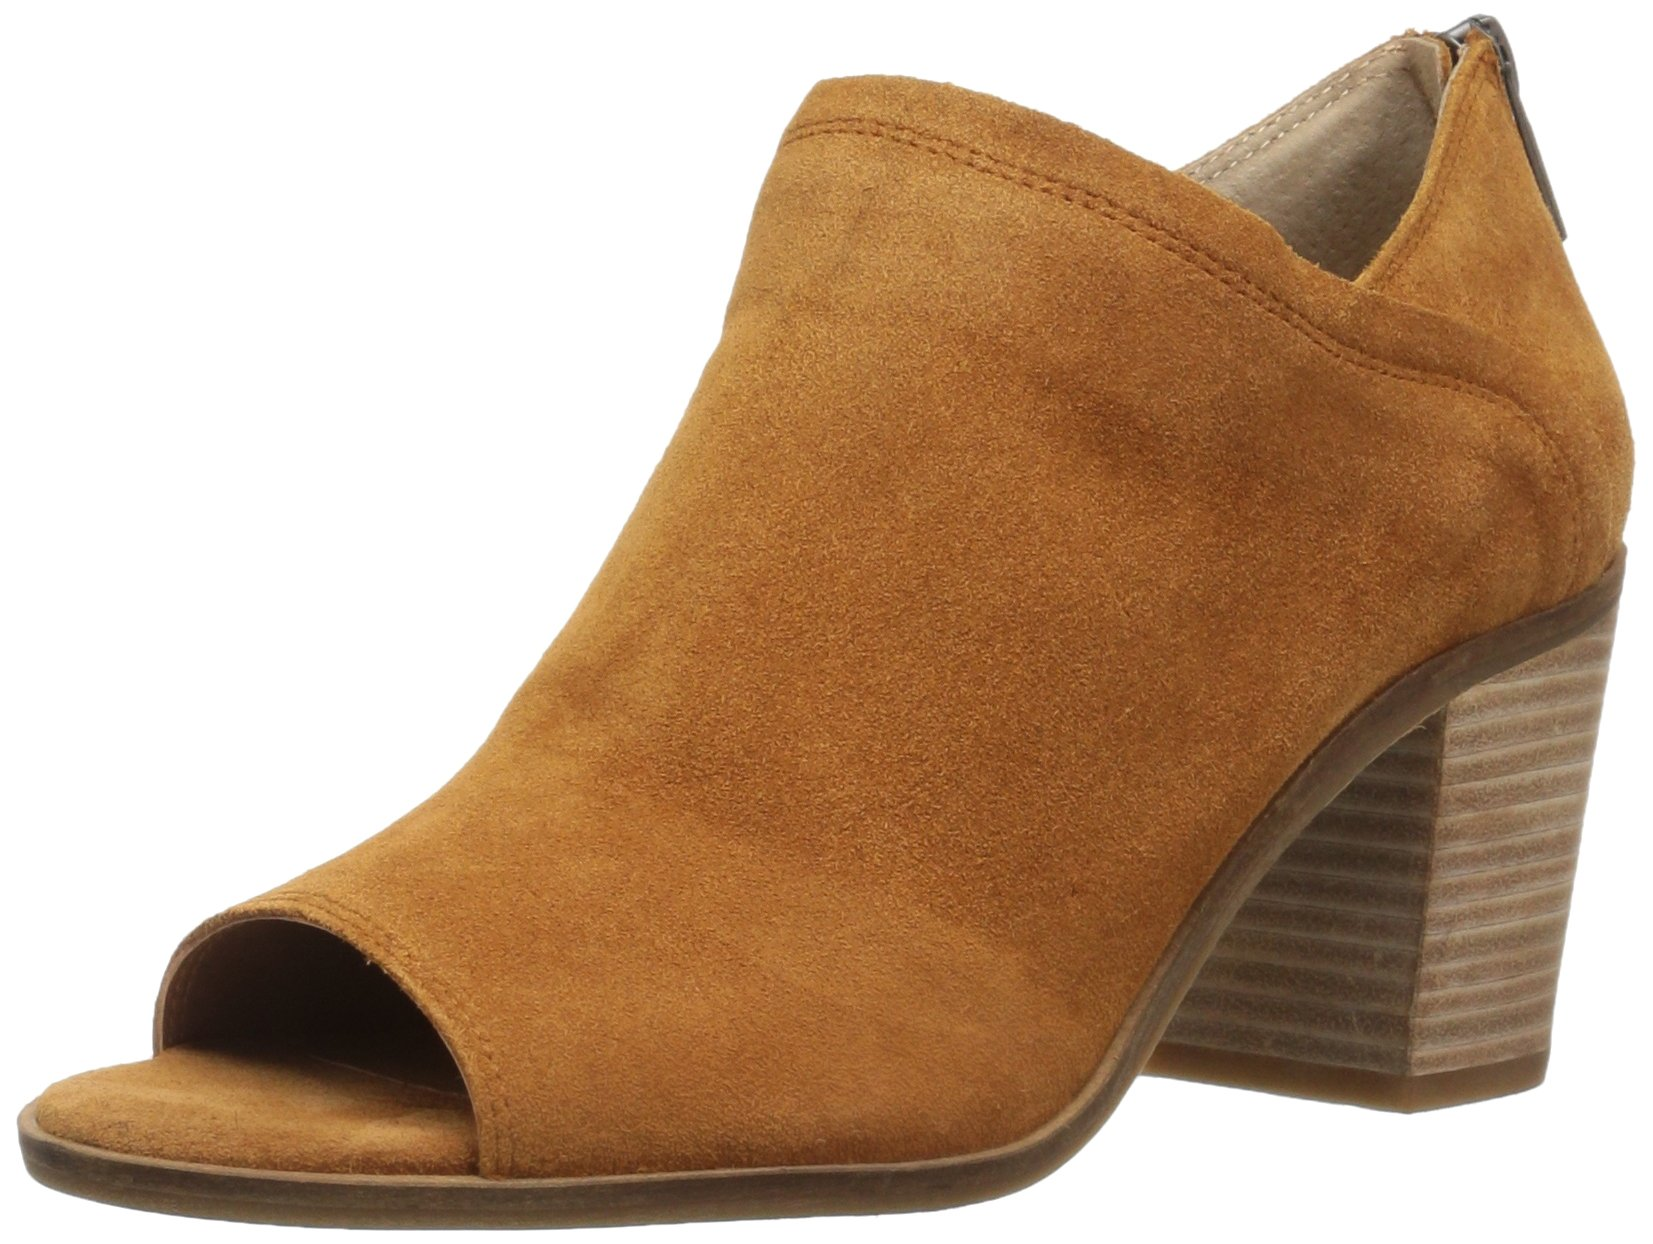 Lucky Brand Women's Kalli Pump, Cafe, 7.5 Medium US